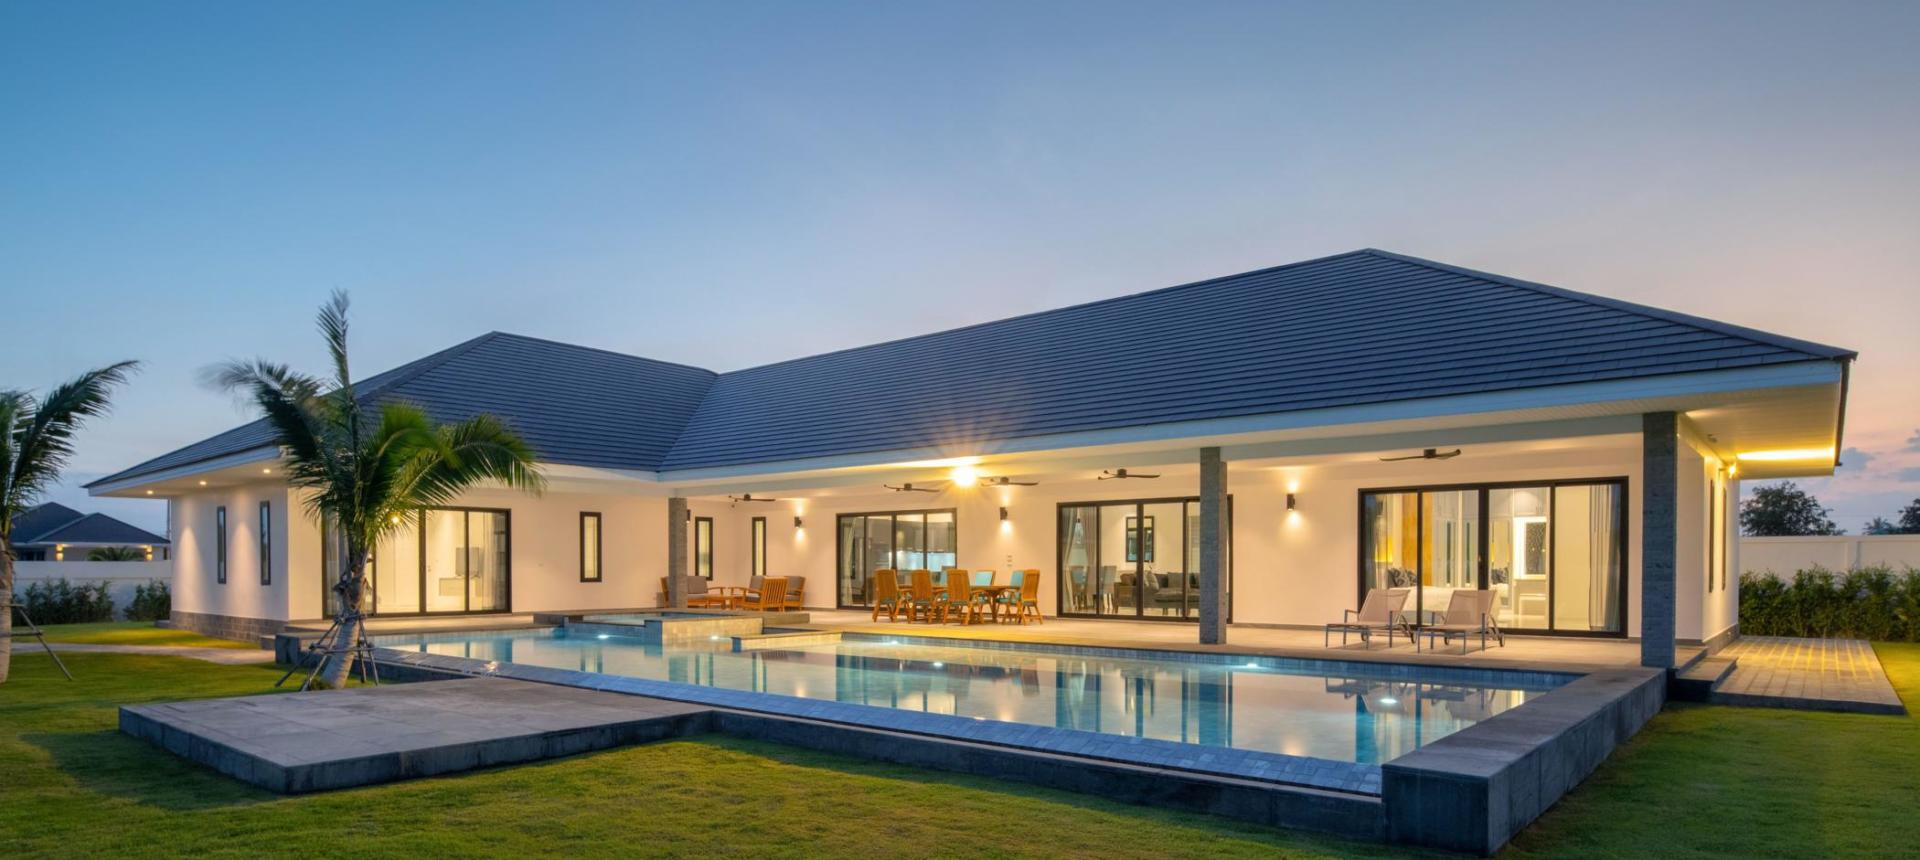 Quality, High-Spec Solar Pool Villa with Stunning Views